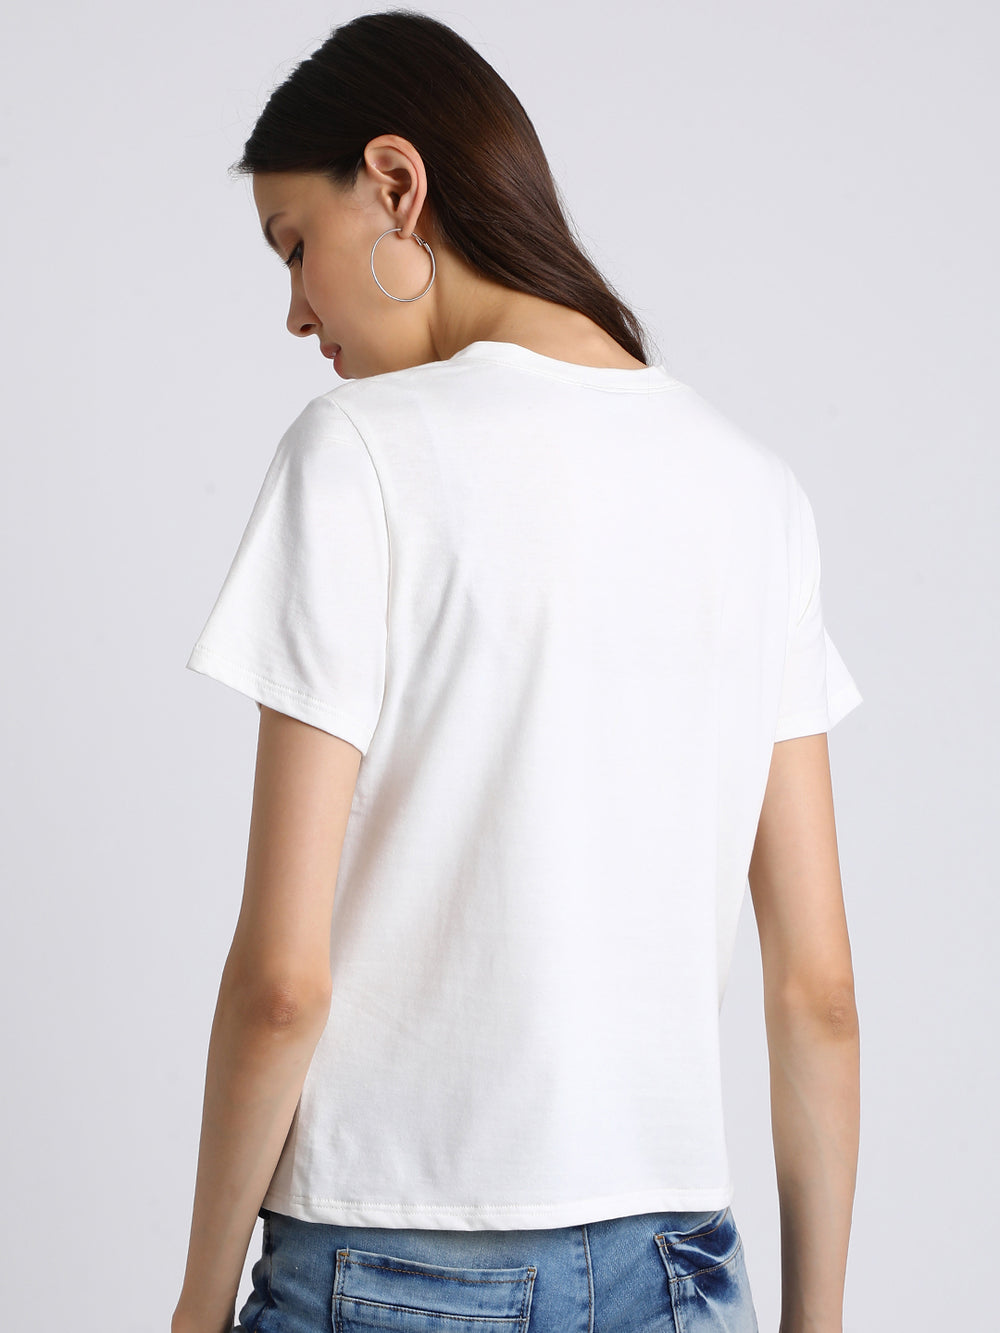 Besiva Women White Printed Round Neck T-shirt